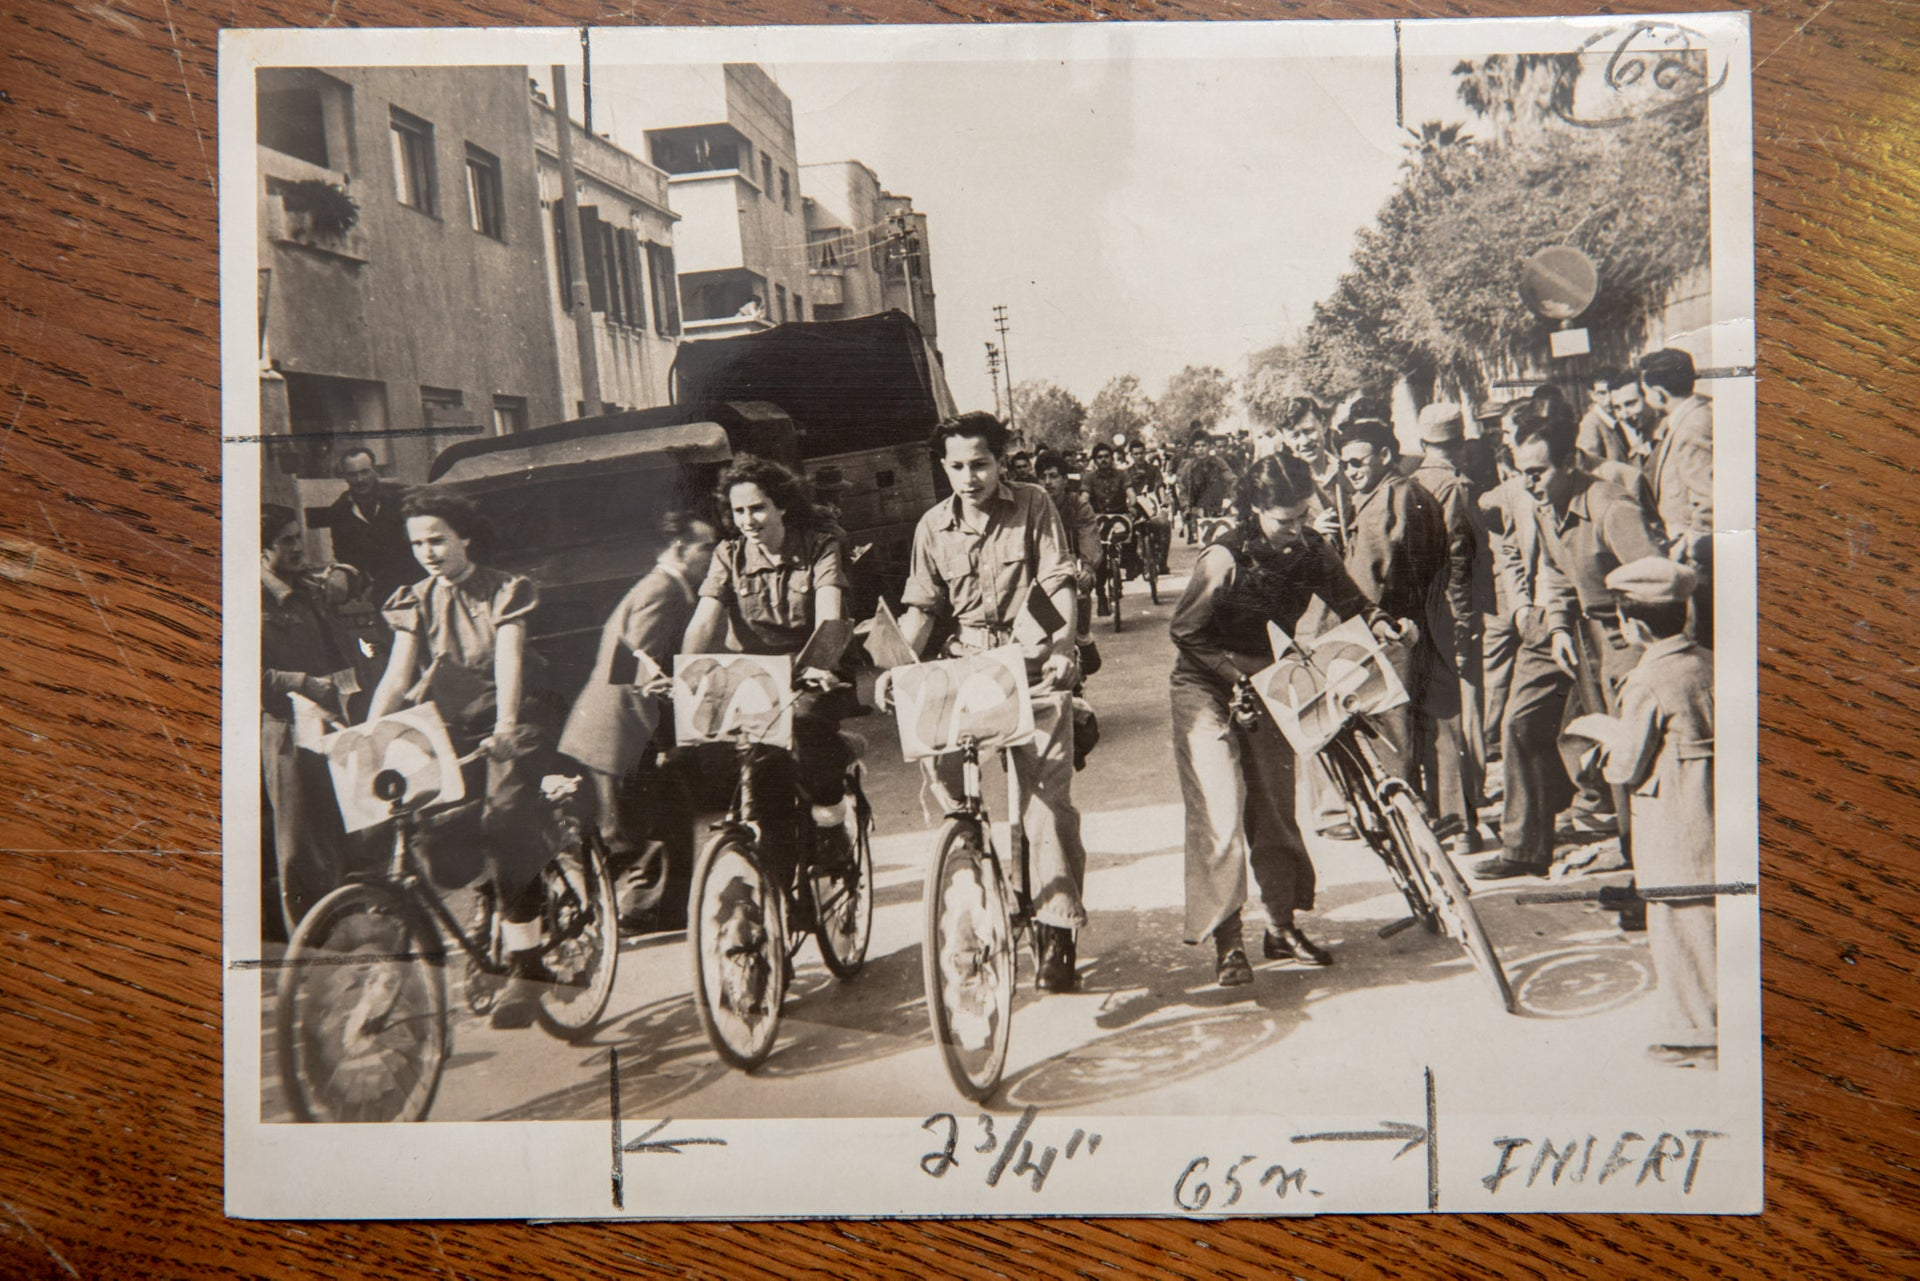 The United Labor Party youth movement campaign for their party on bicycles in Tel Aviv February 1 1949.